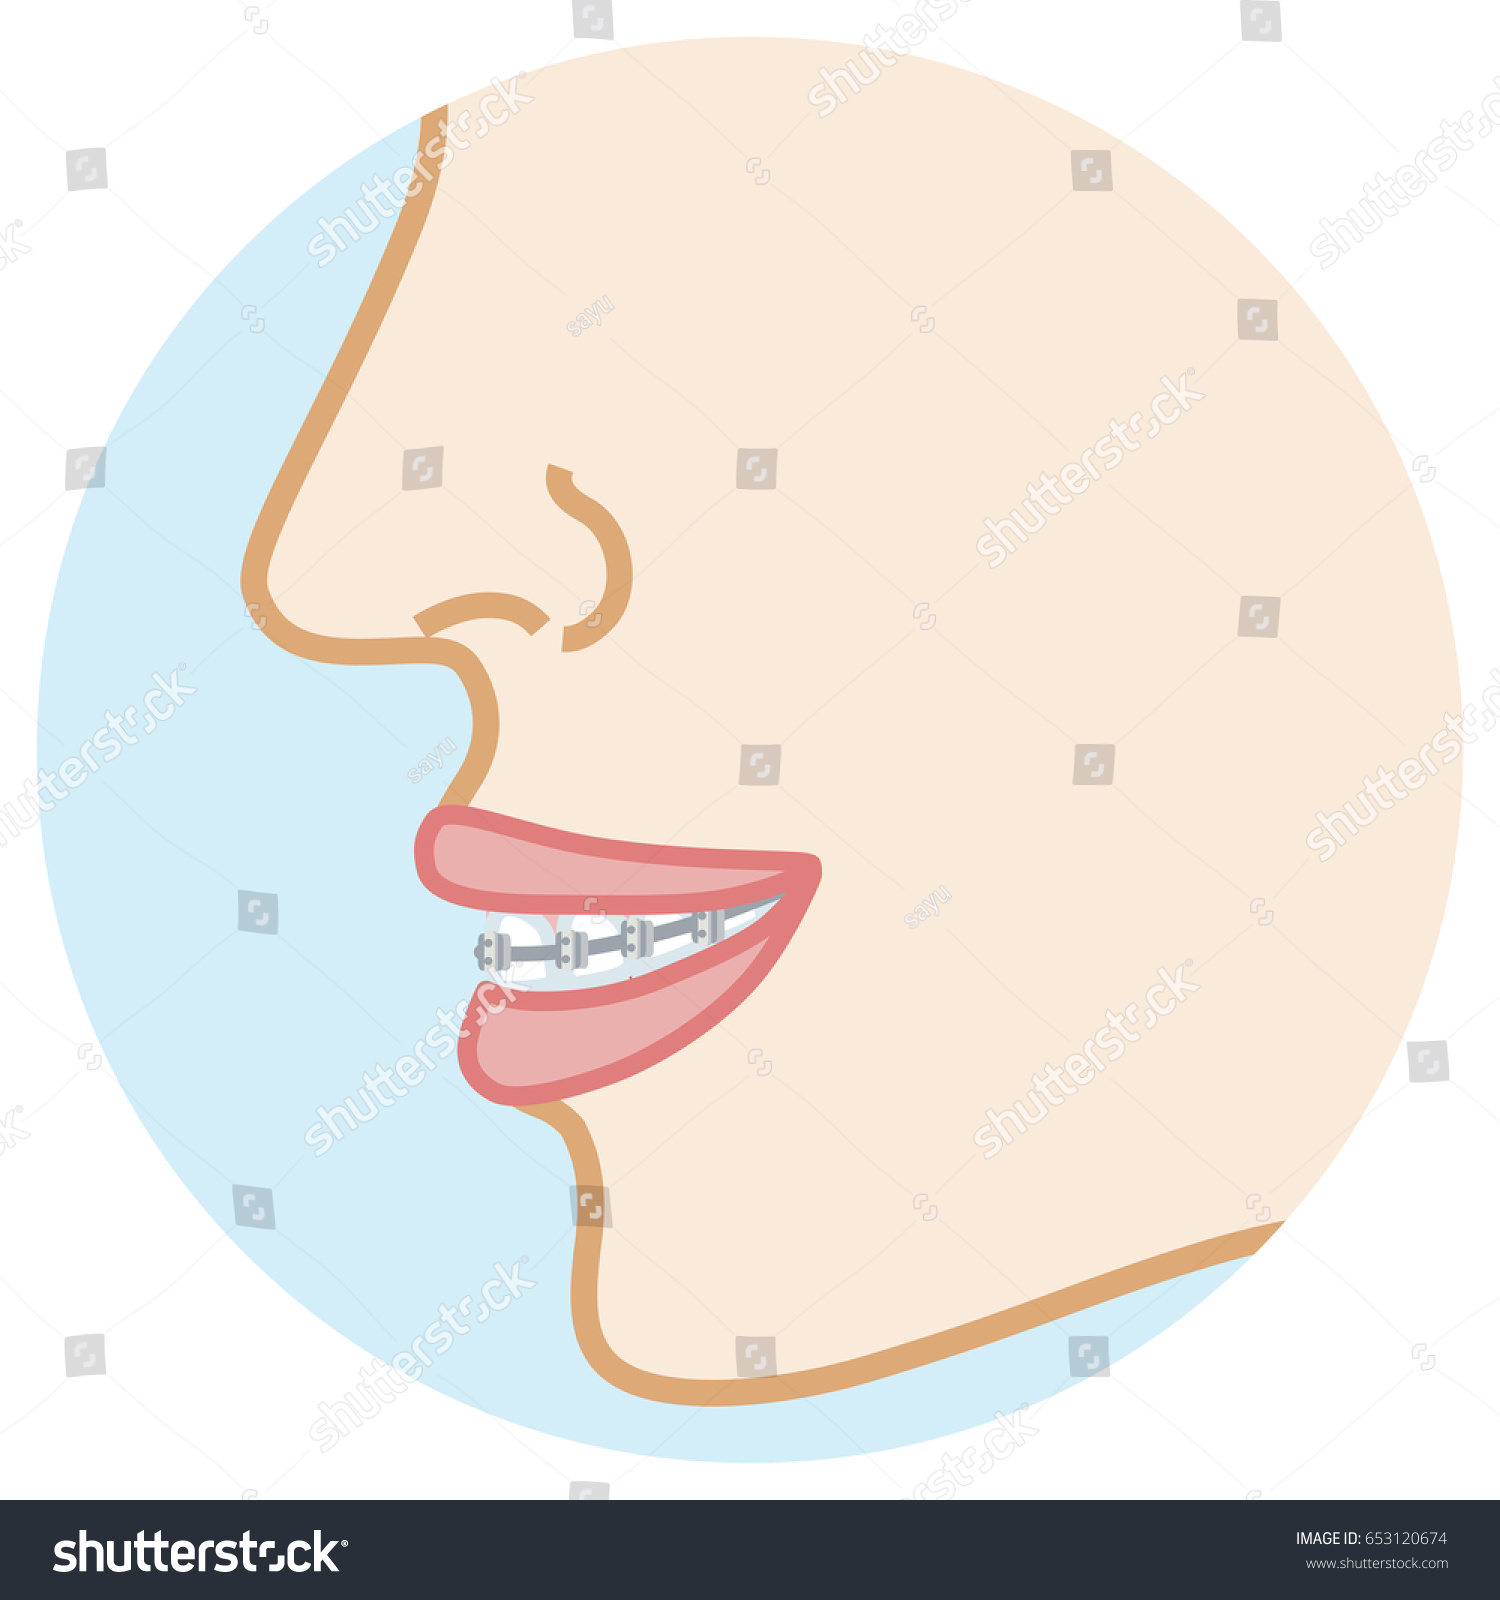 hight resolution of orthodontic appliance face close up side view